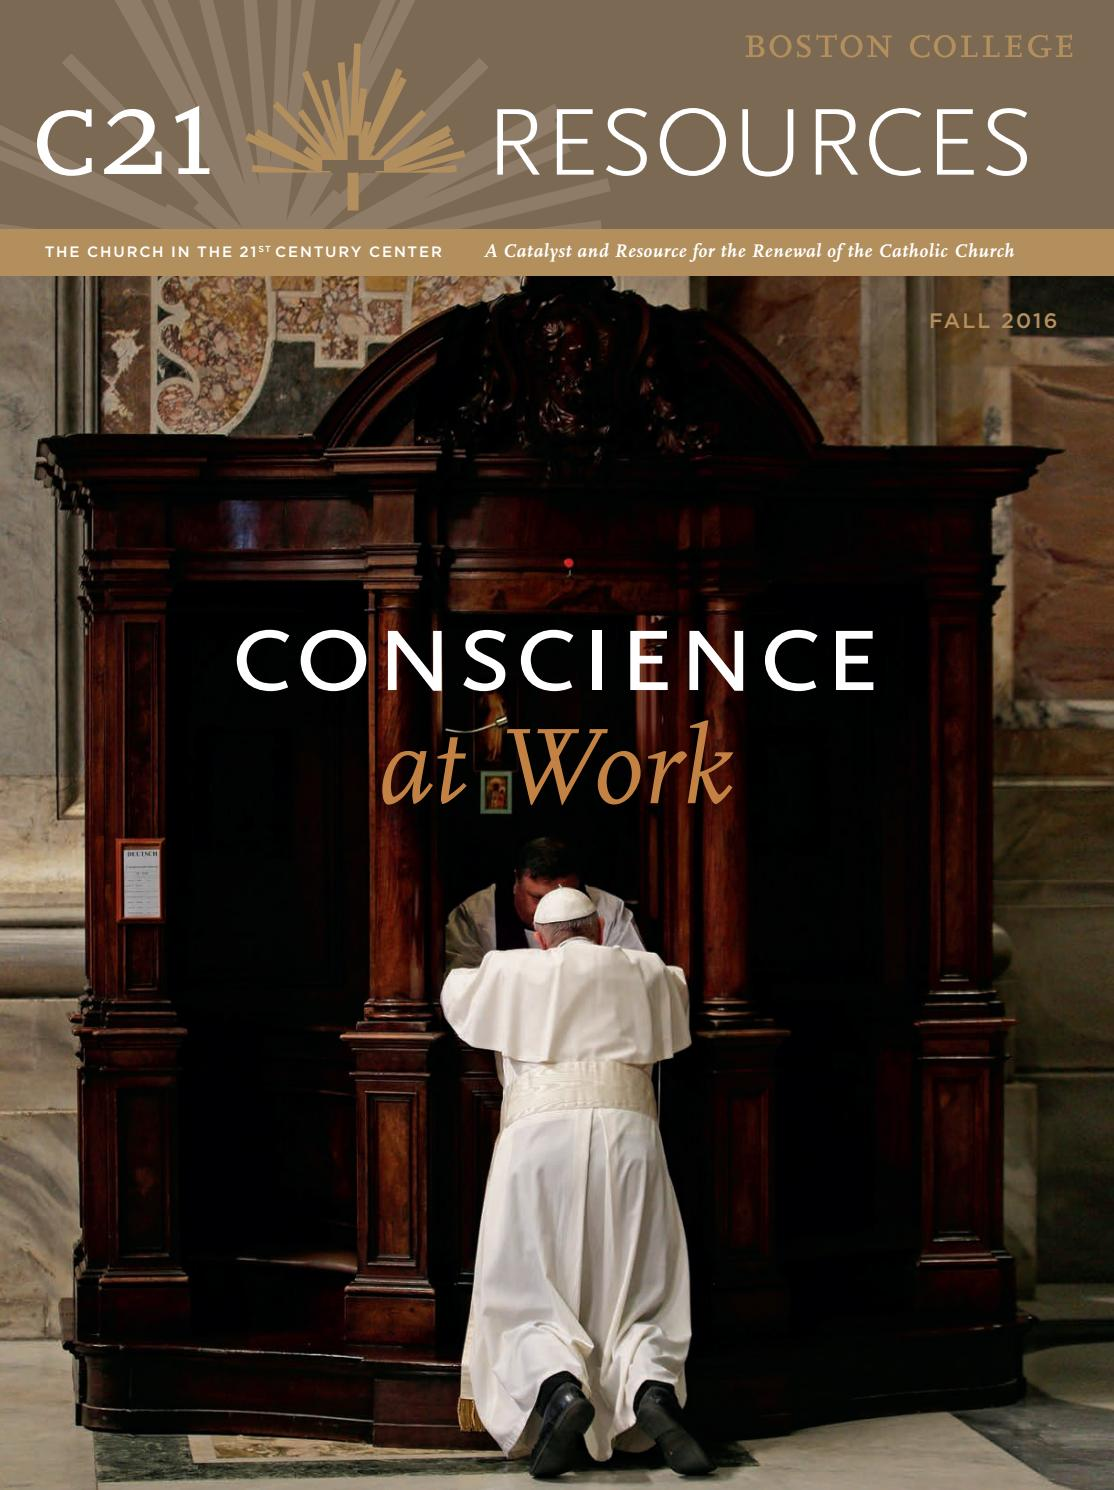 editorial on boston catholic church essay For centuries, americans saw the catholic church as a dangerous  she is the  author of papist patriots (2012), and lives in the boston area  a syndicated  editorial suggesting that catholicism wasn't 'compatible with the.